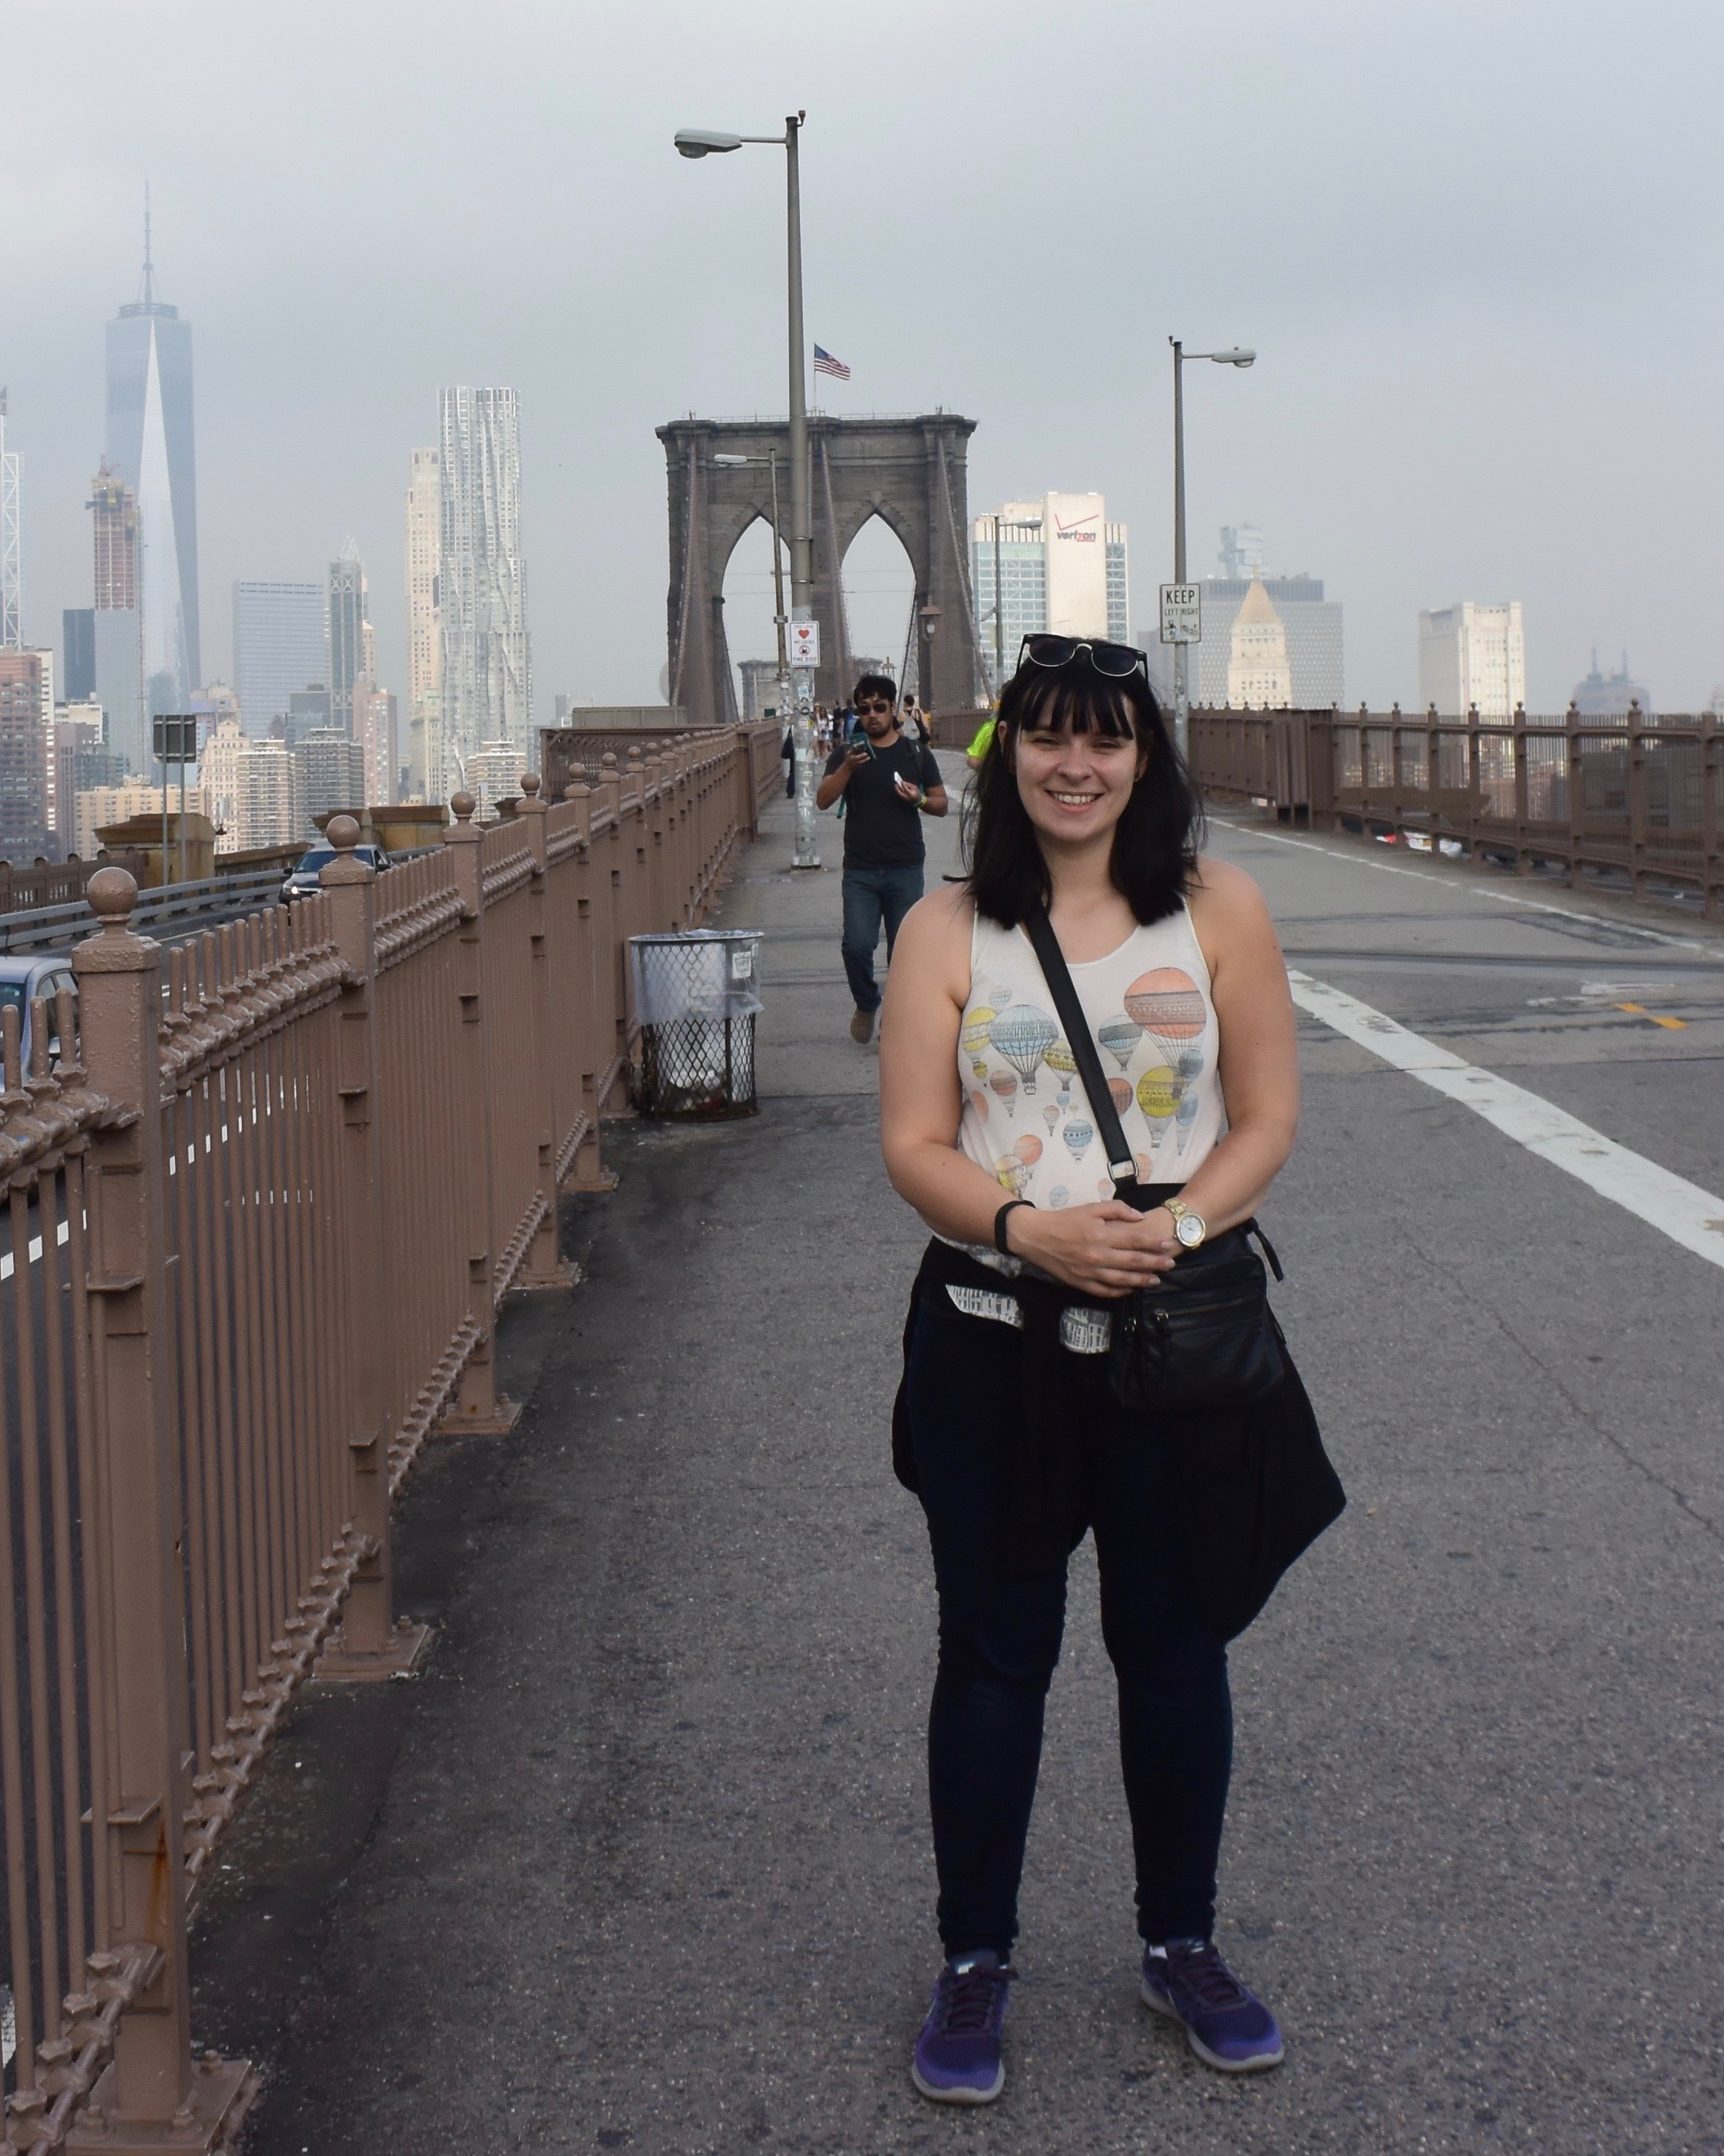 New York - diane on brooklyn bridge